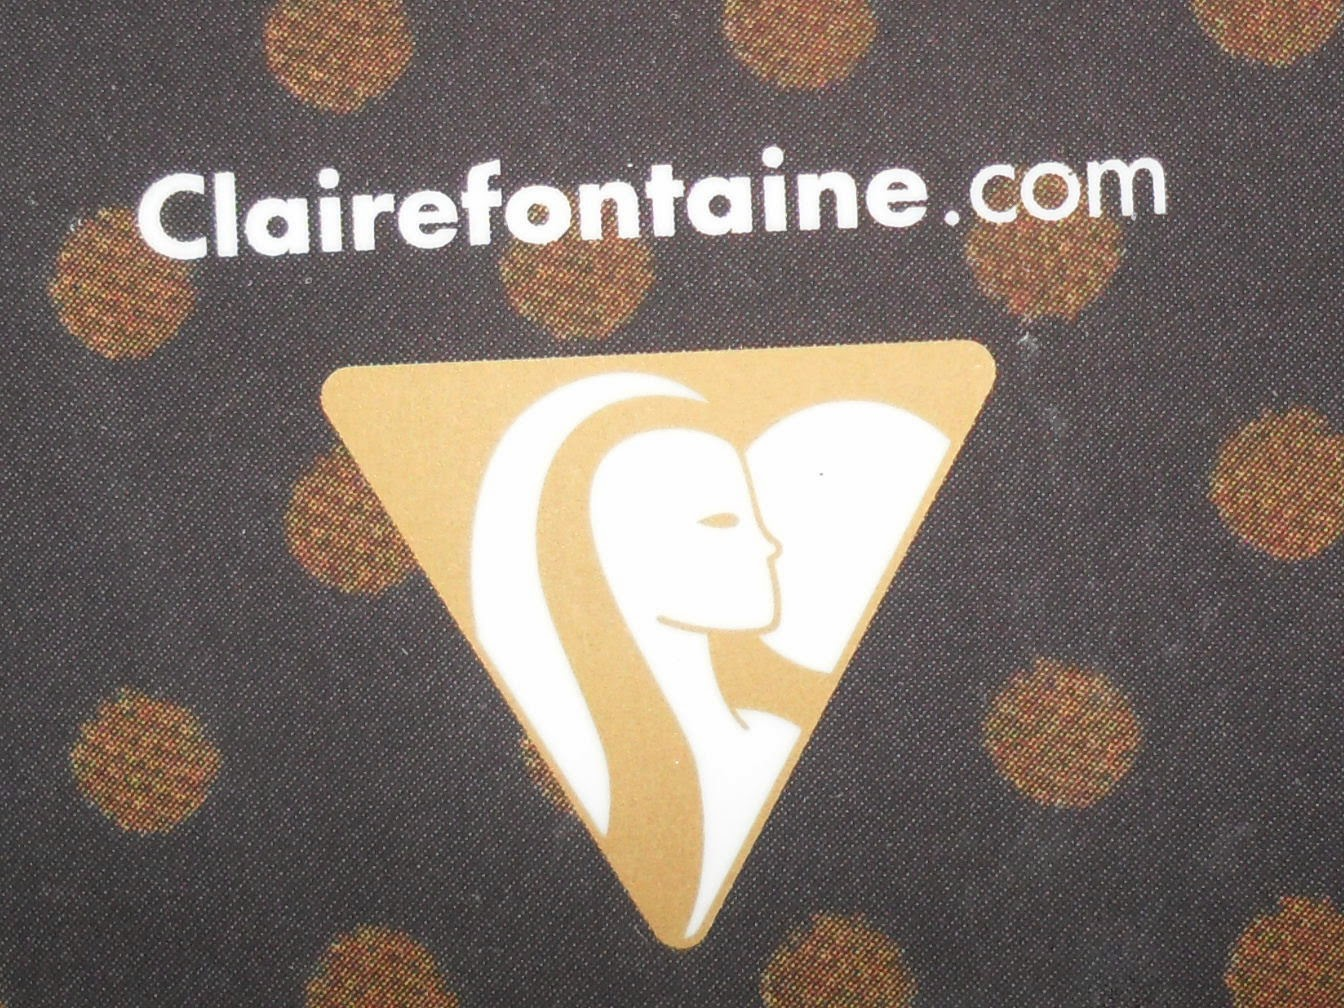 http://www.clairefontaine.com/